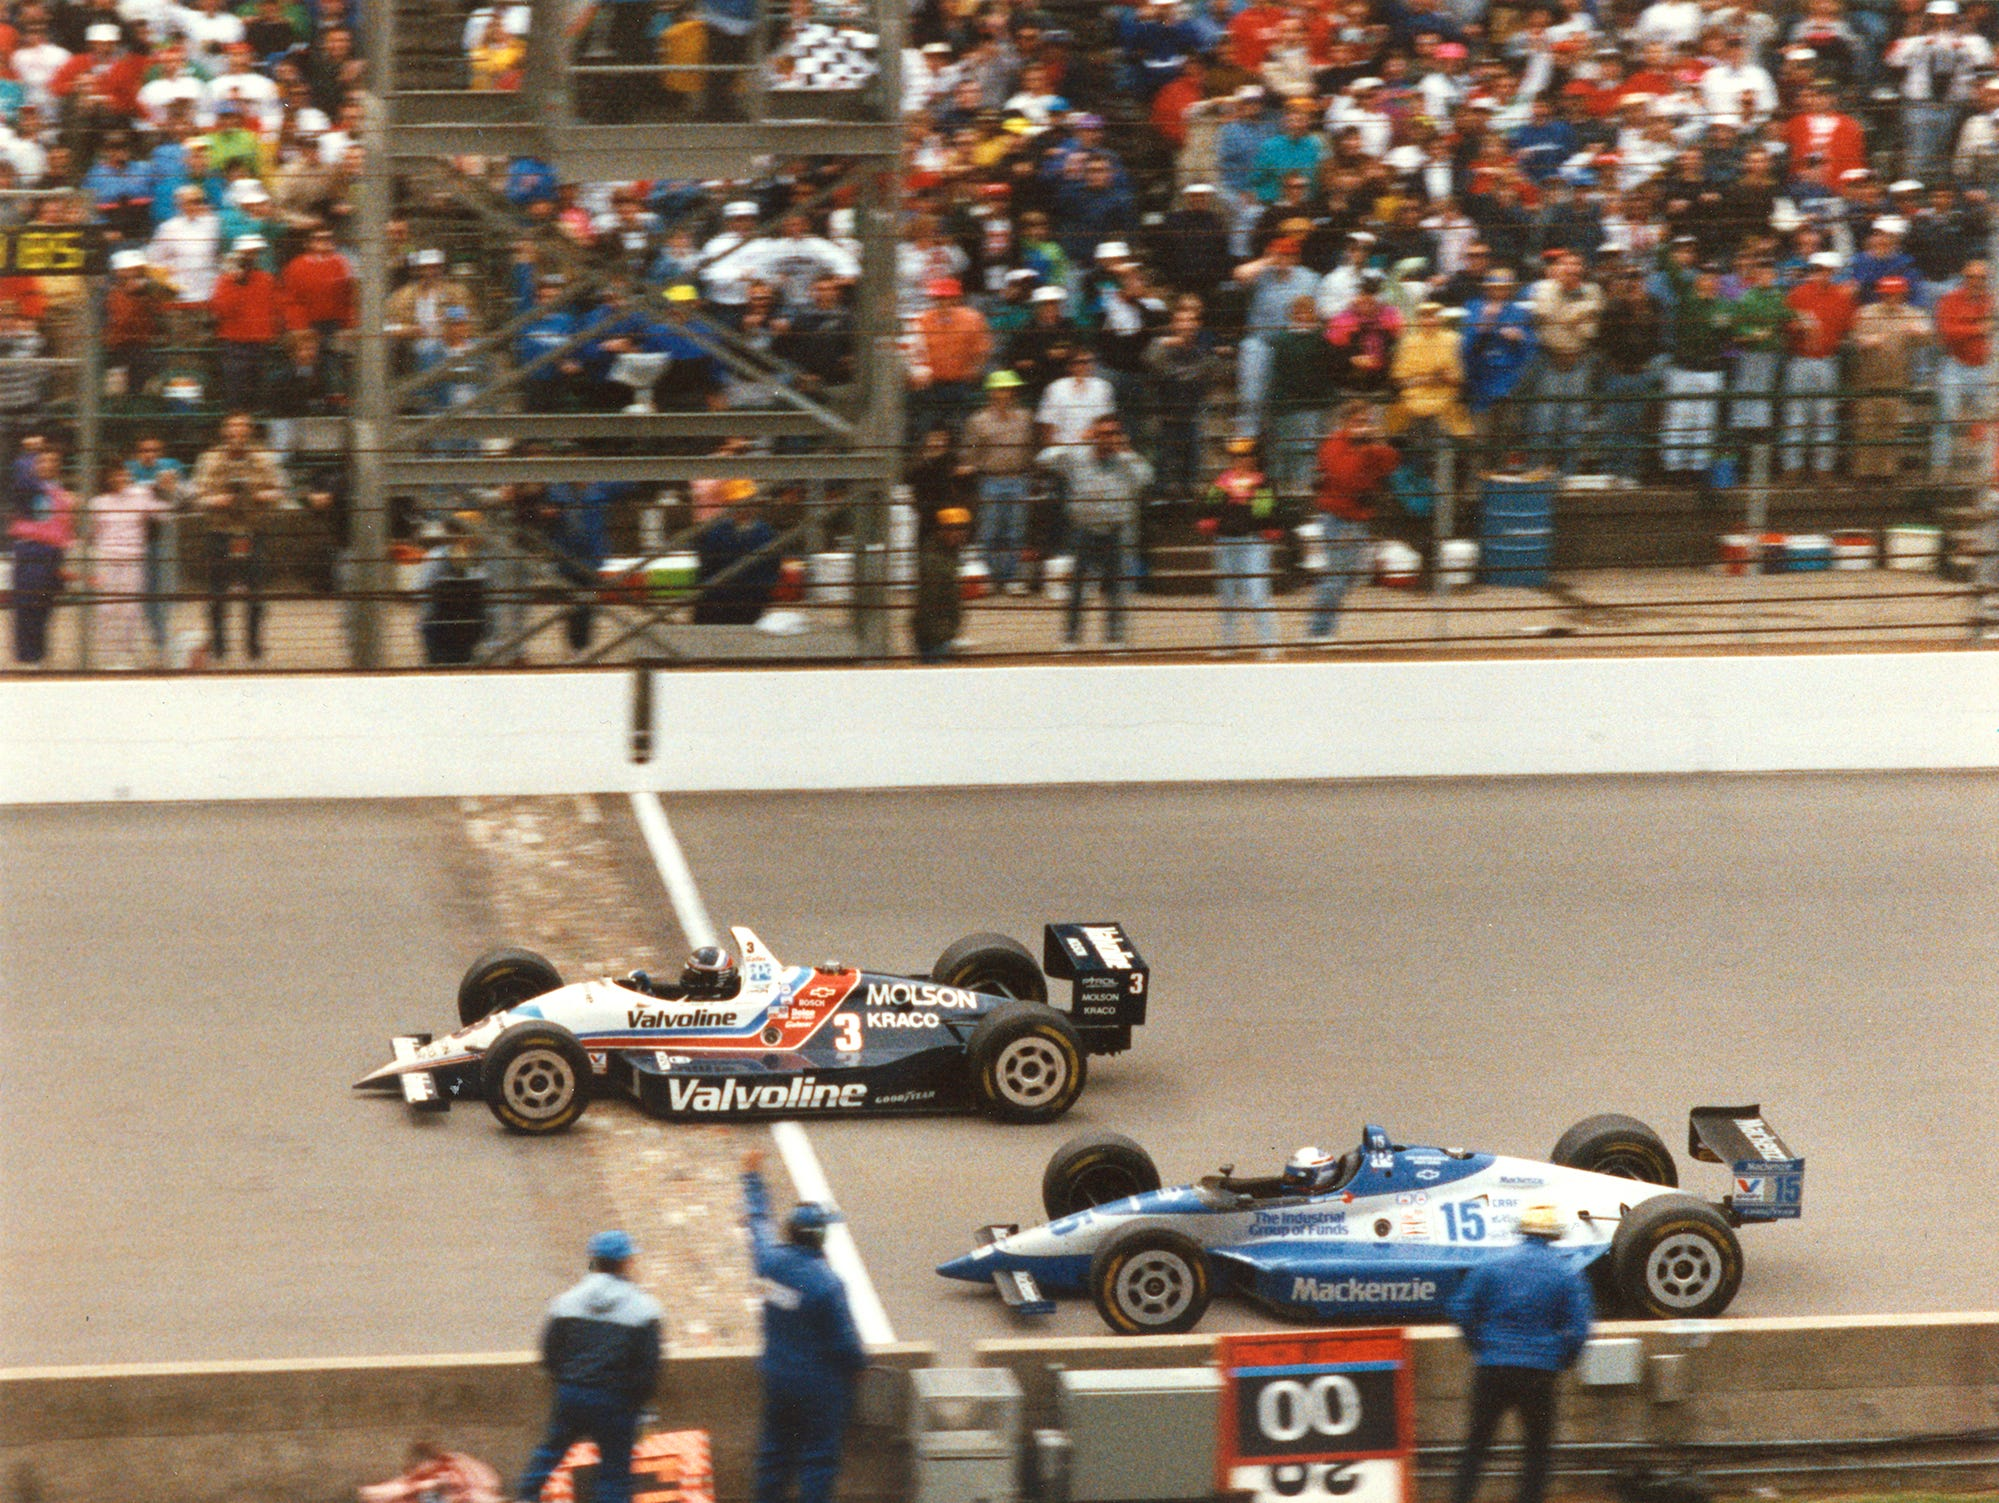 Al Unser Jr. beats Scott Goodyear to the finish line in the closest Indy Car finish in 1992.